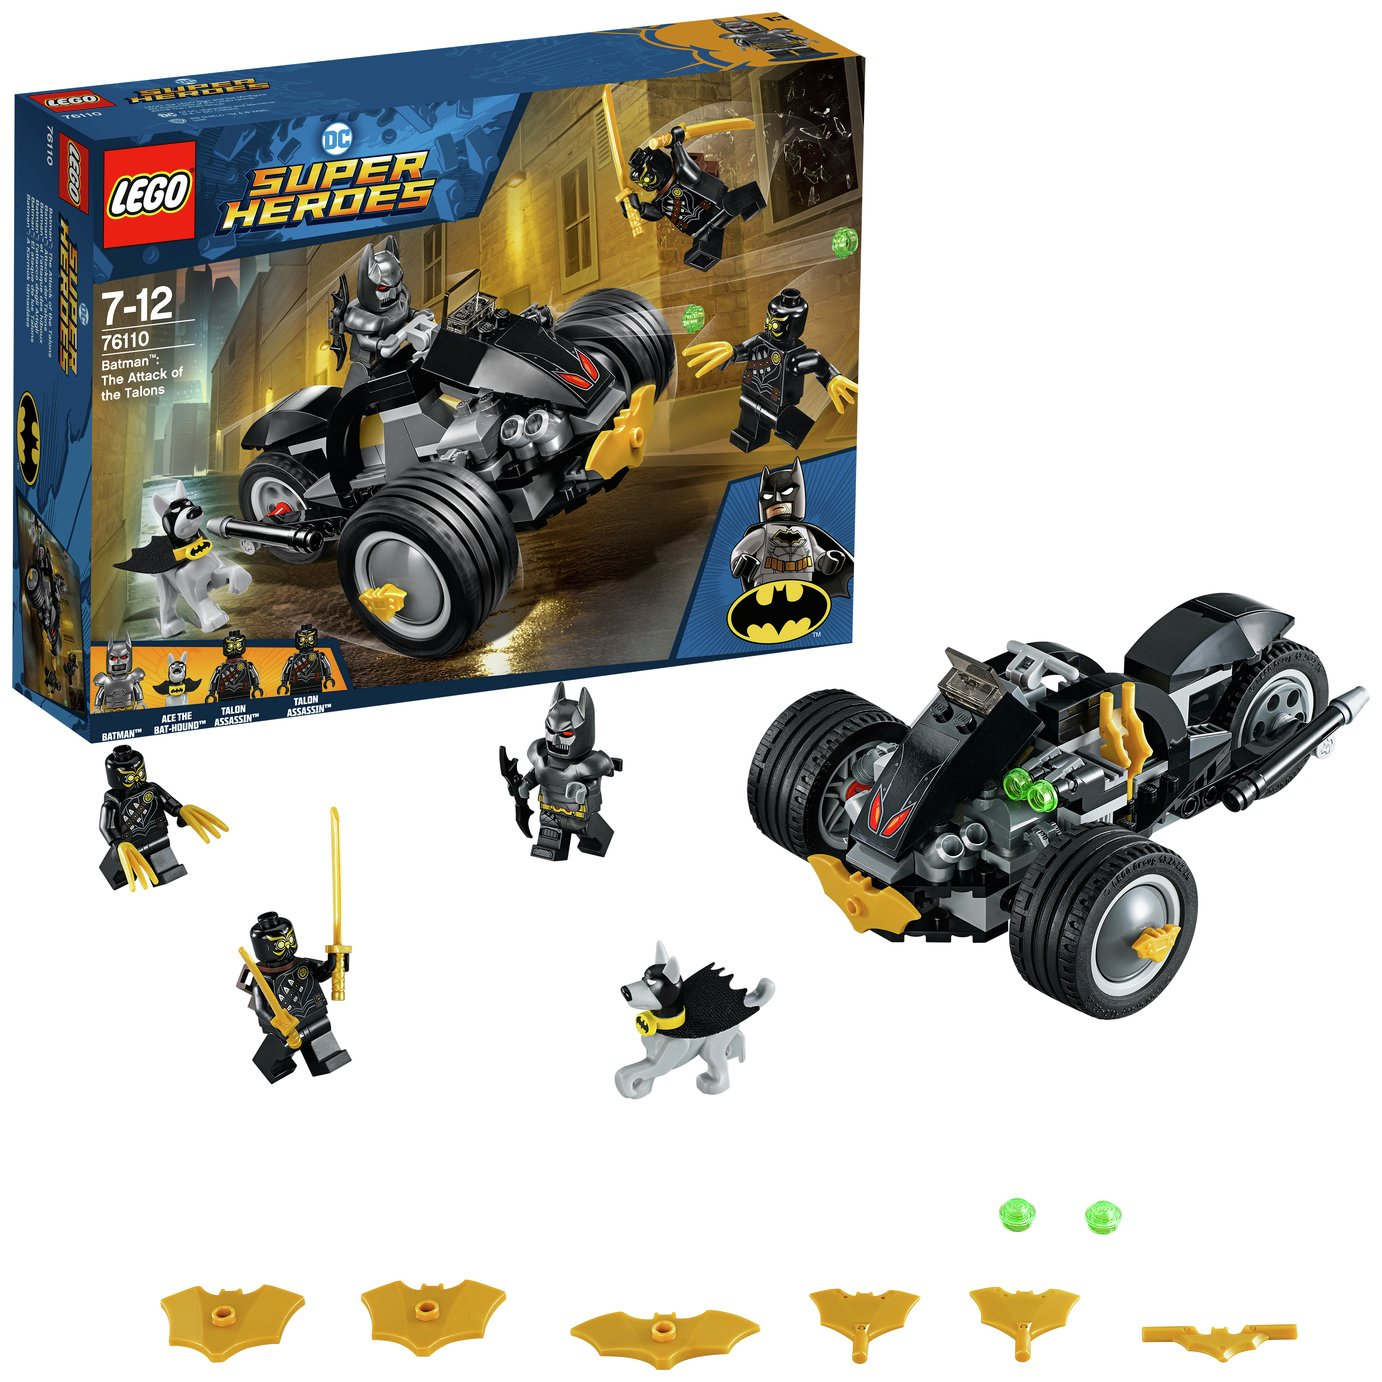 LEGO Super Heroes Batman Attack of the Talons - 76110